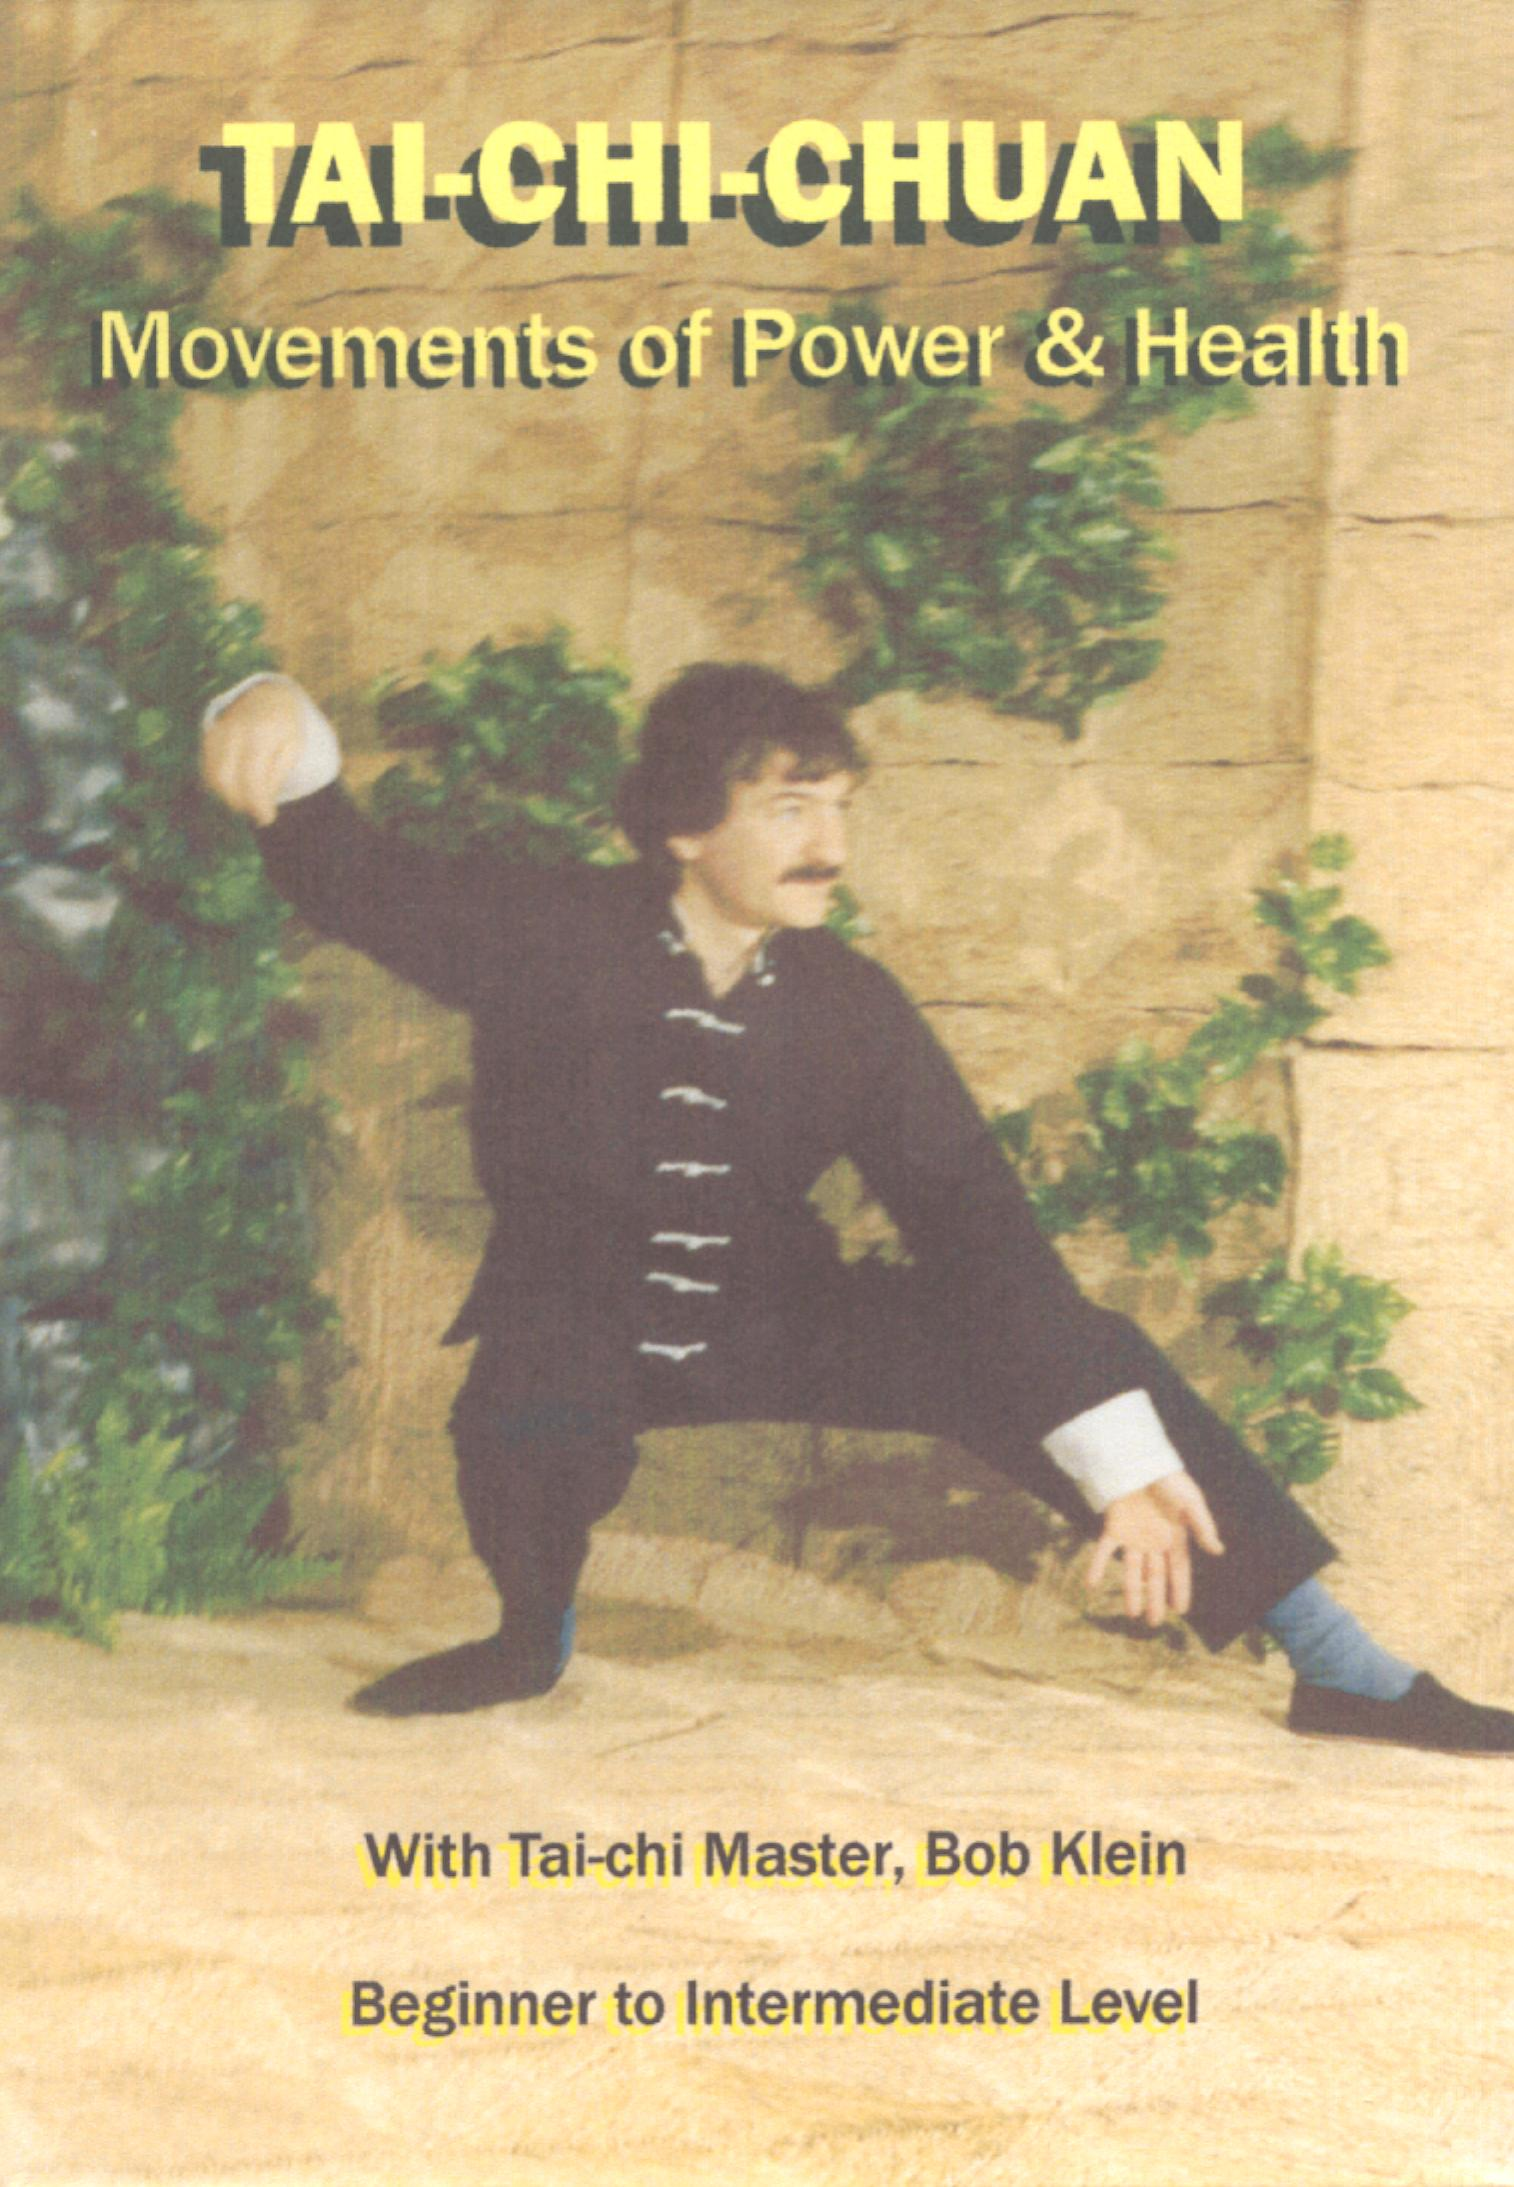 T'ai Chi Chuan: Movements of Power and Health